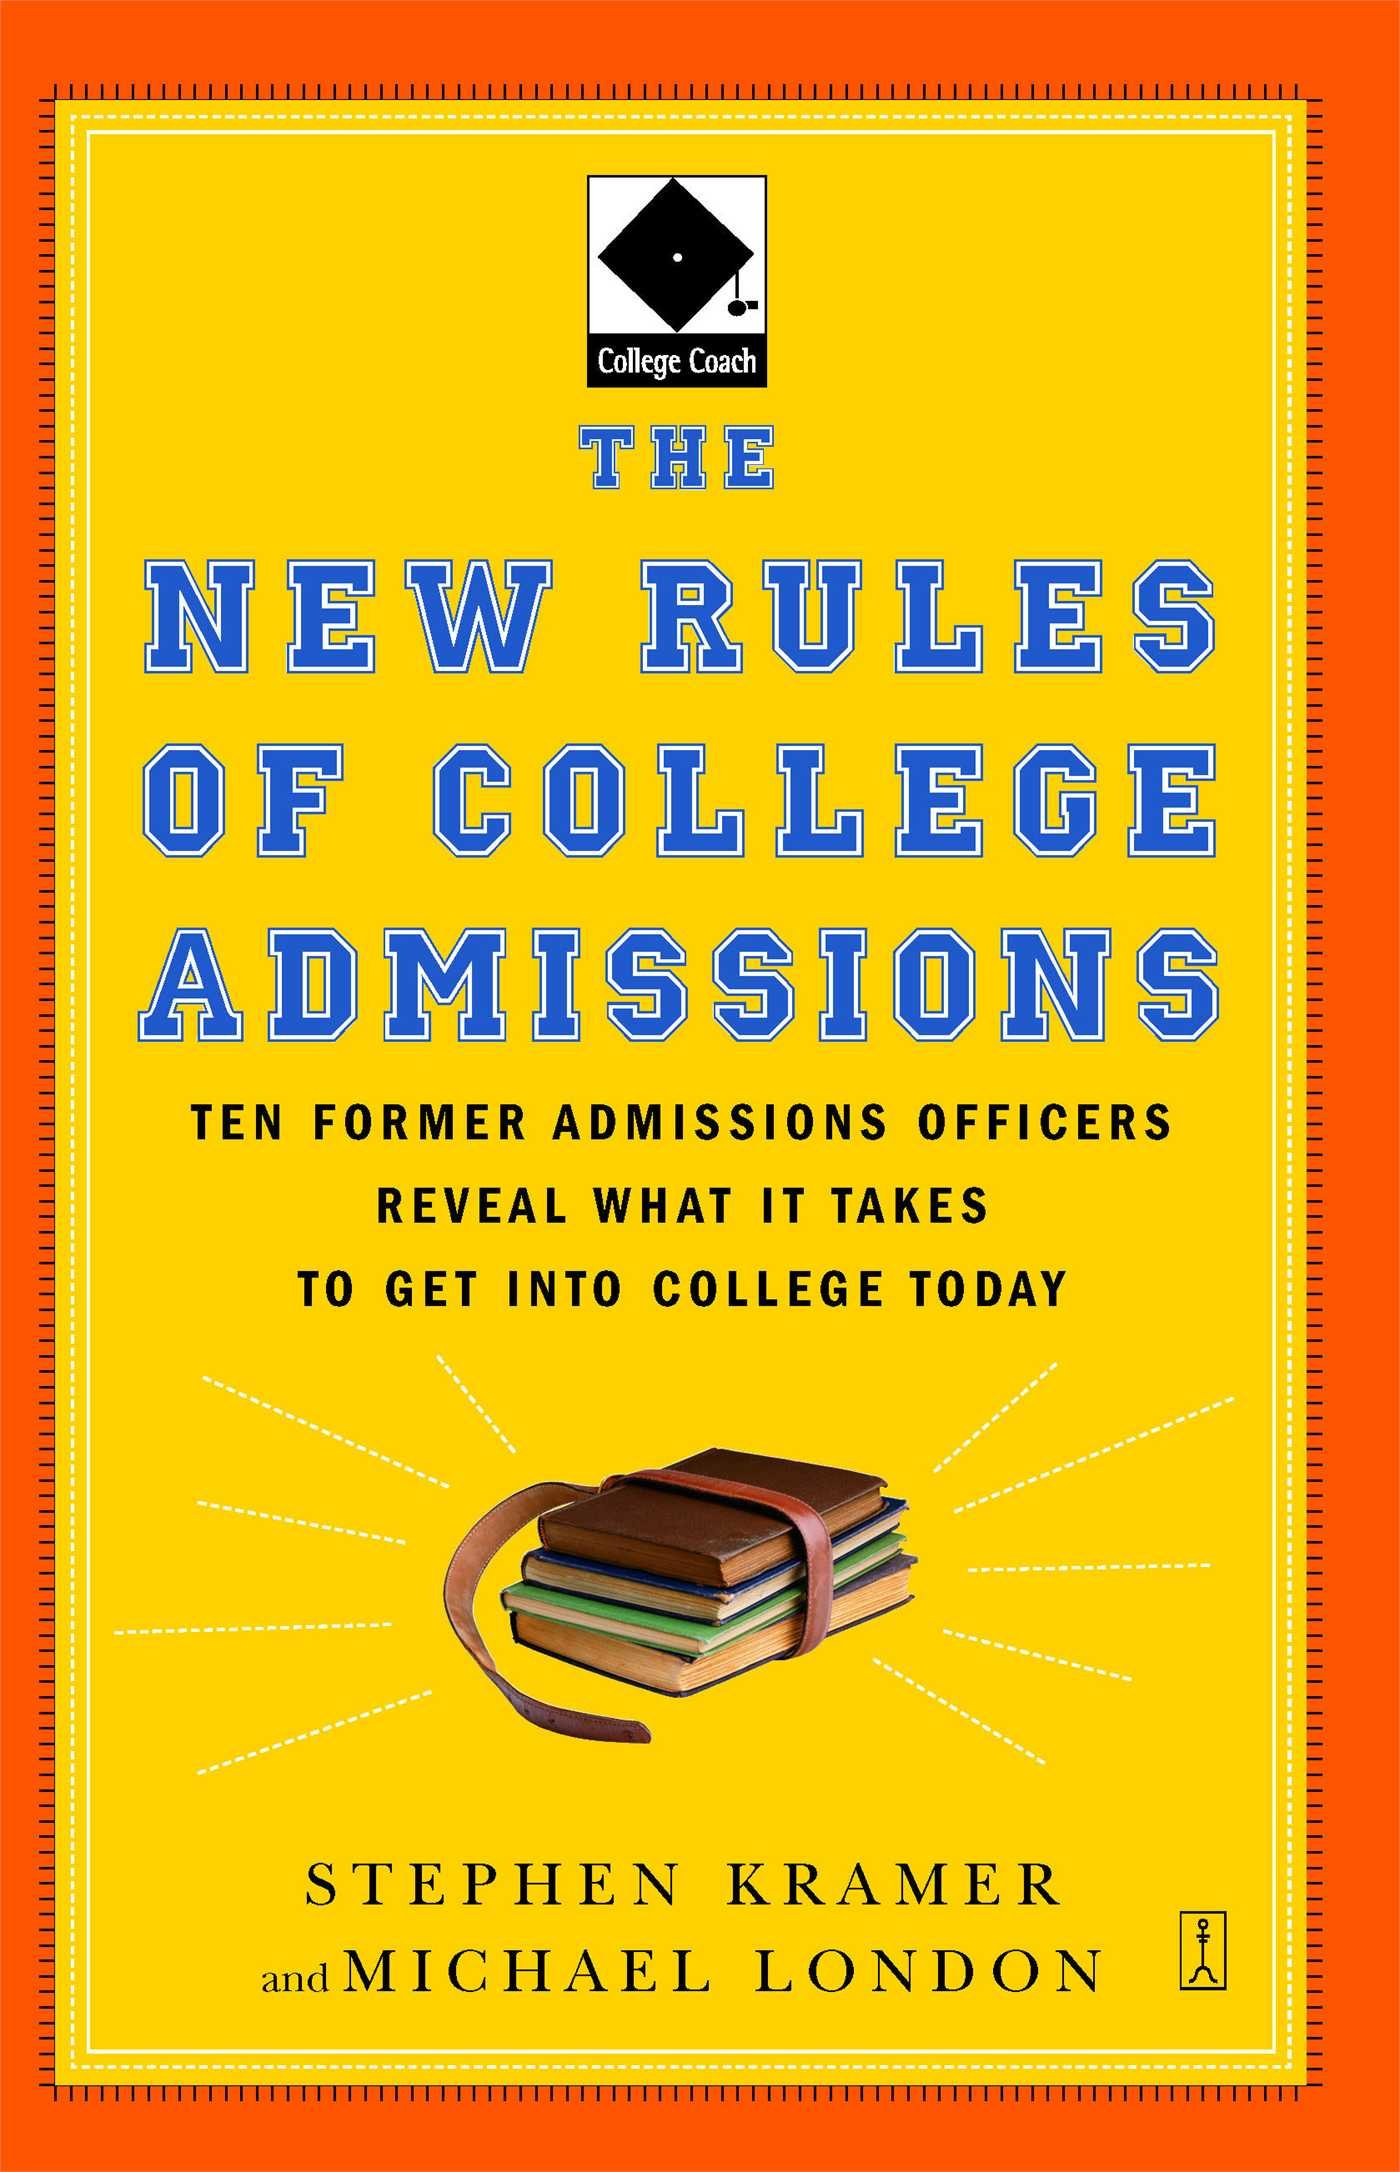 Amazon.com: The New Rules of College Admissions: Ten Former Admissions  Officers Reveal What it Takes to Get Into College Today (Fireside Books  (Fireside)) ...